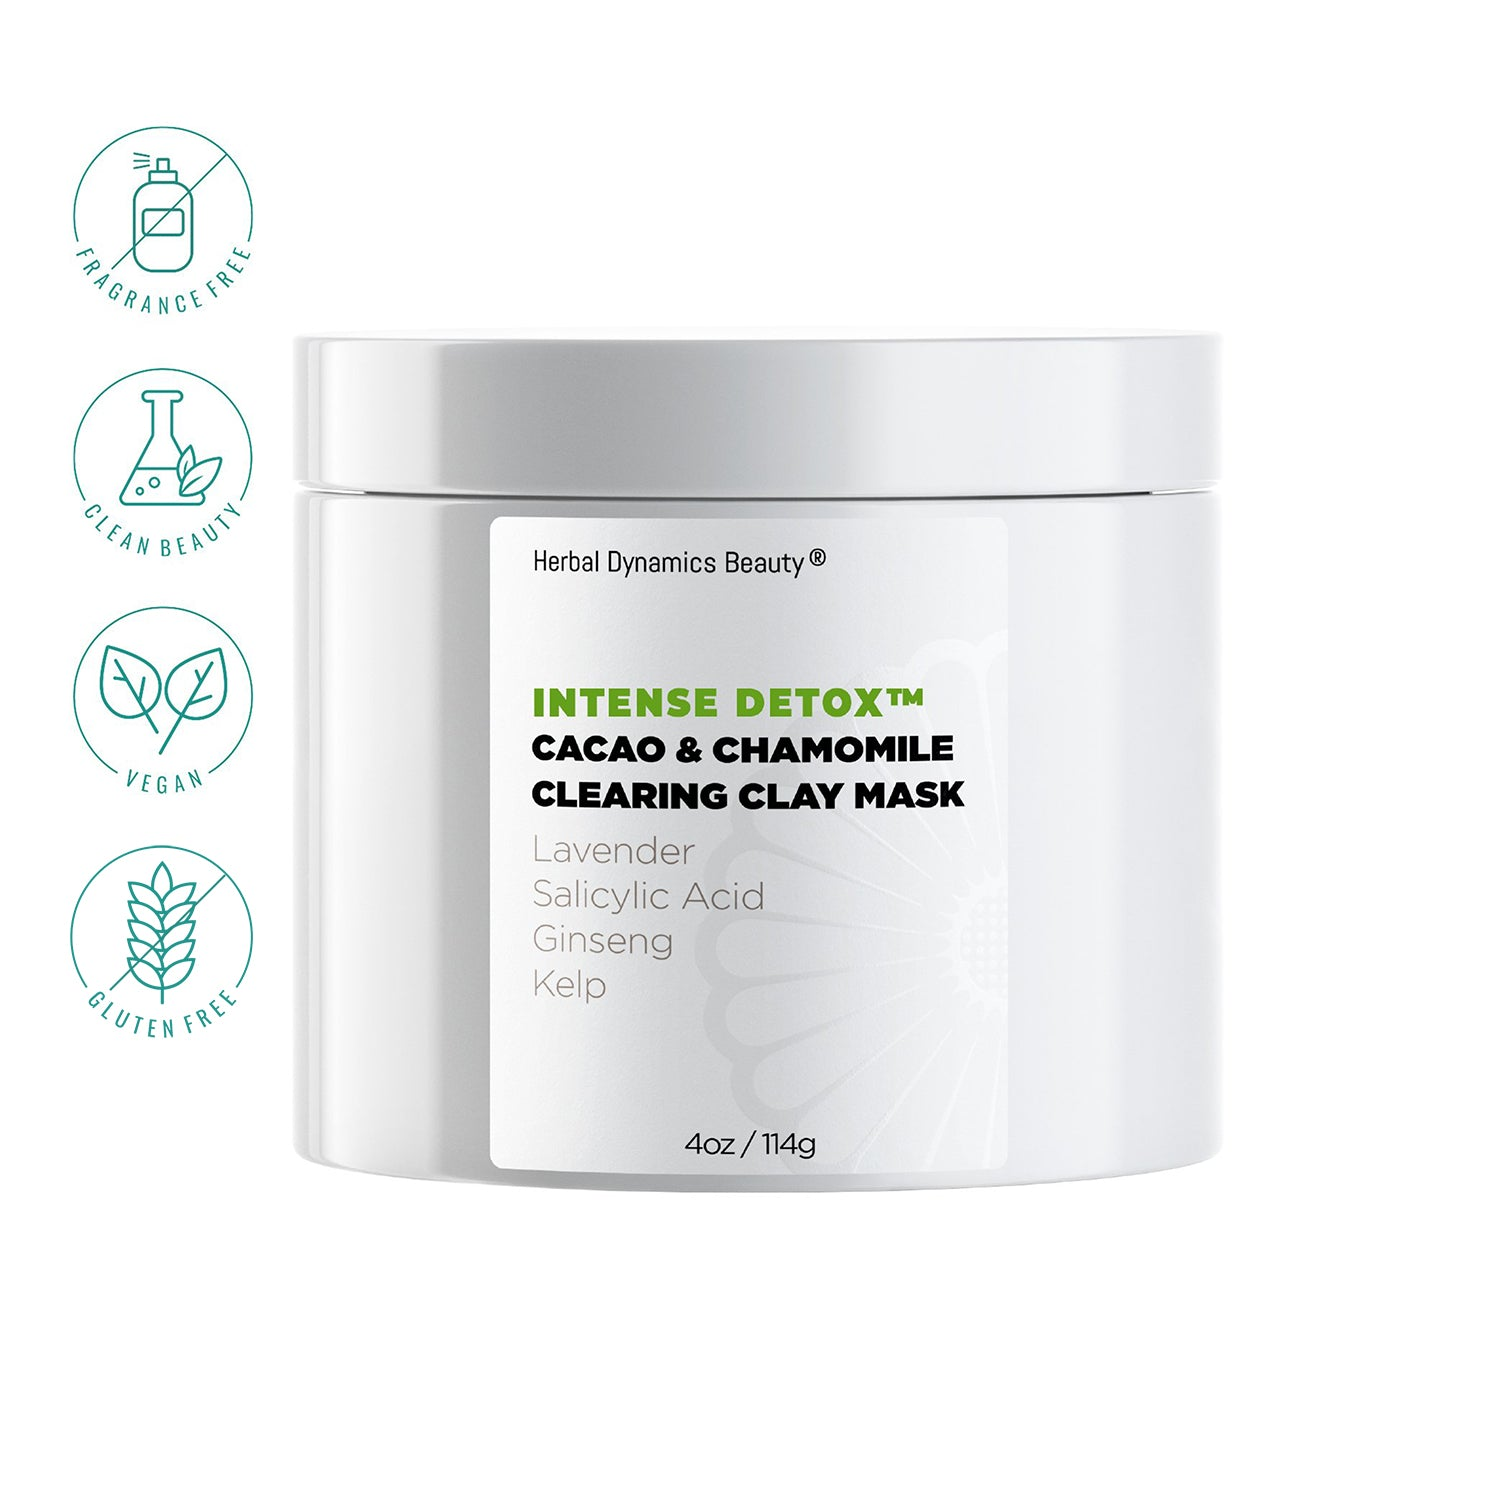 Herbal Dynamics Beauty® Intense Detox® Cacao & Chamomile Clearing Clay Mask